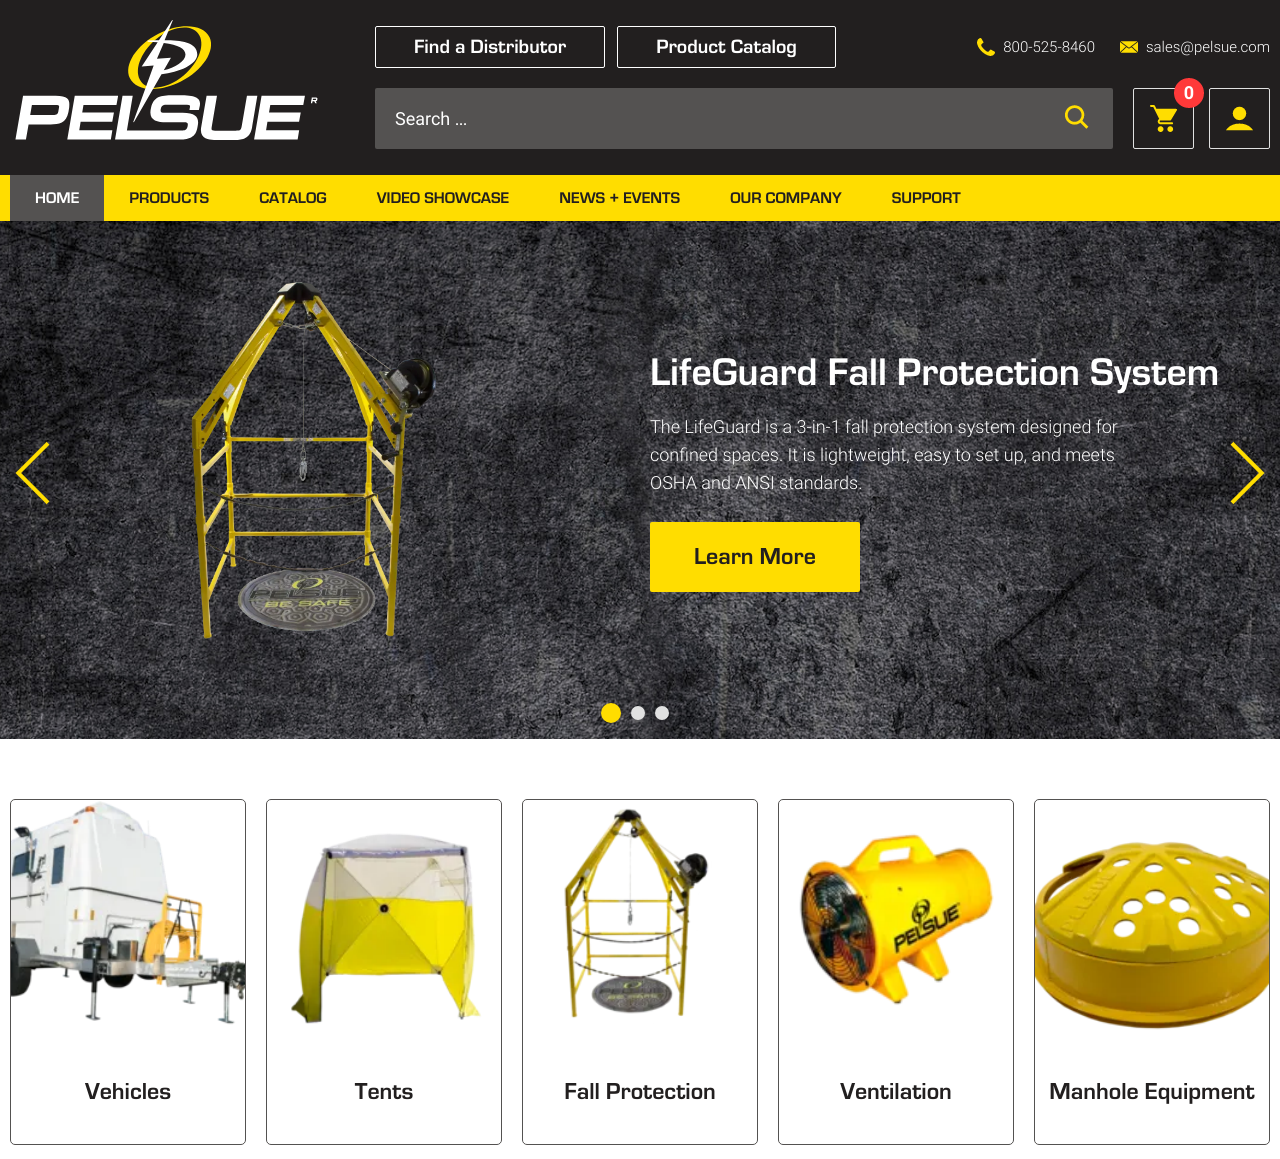 A view of Pelsue's new website